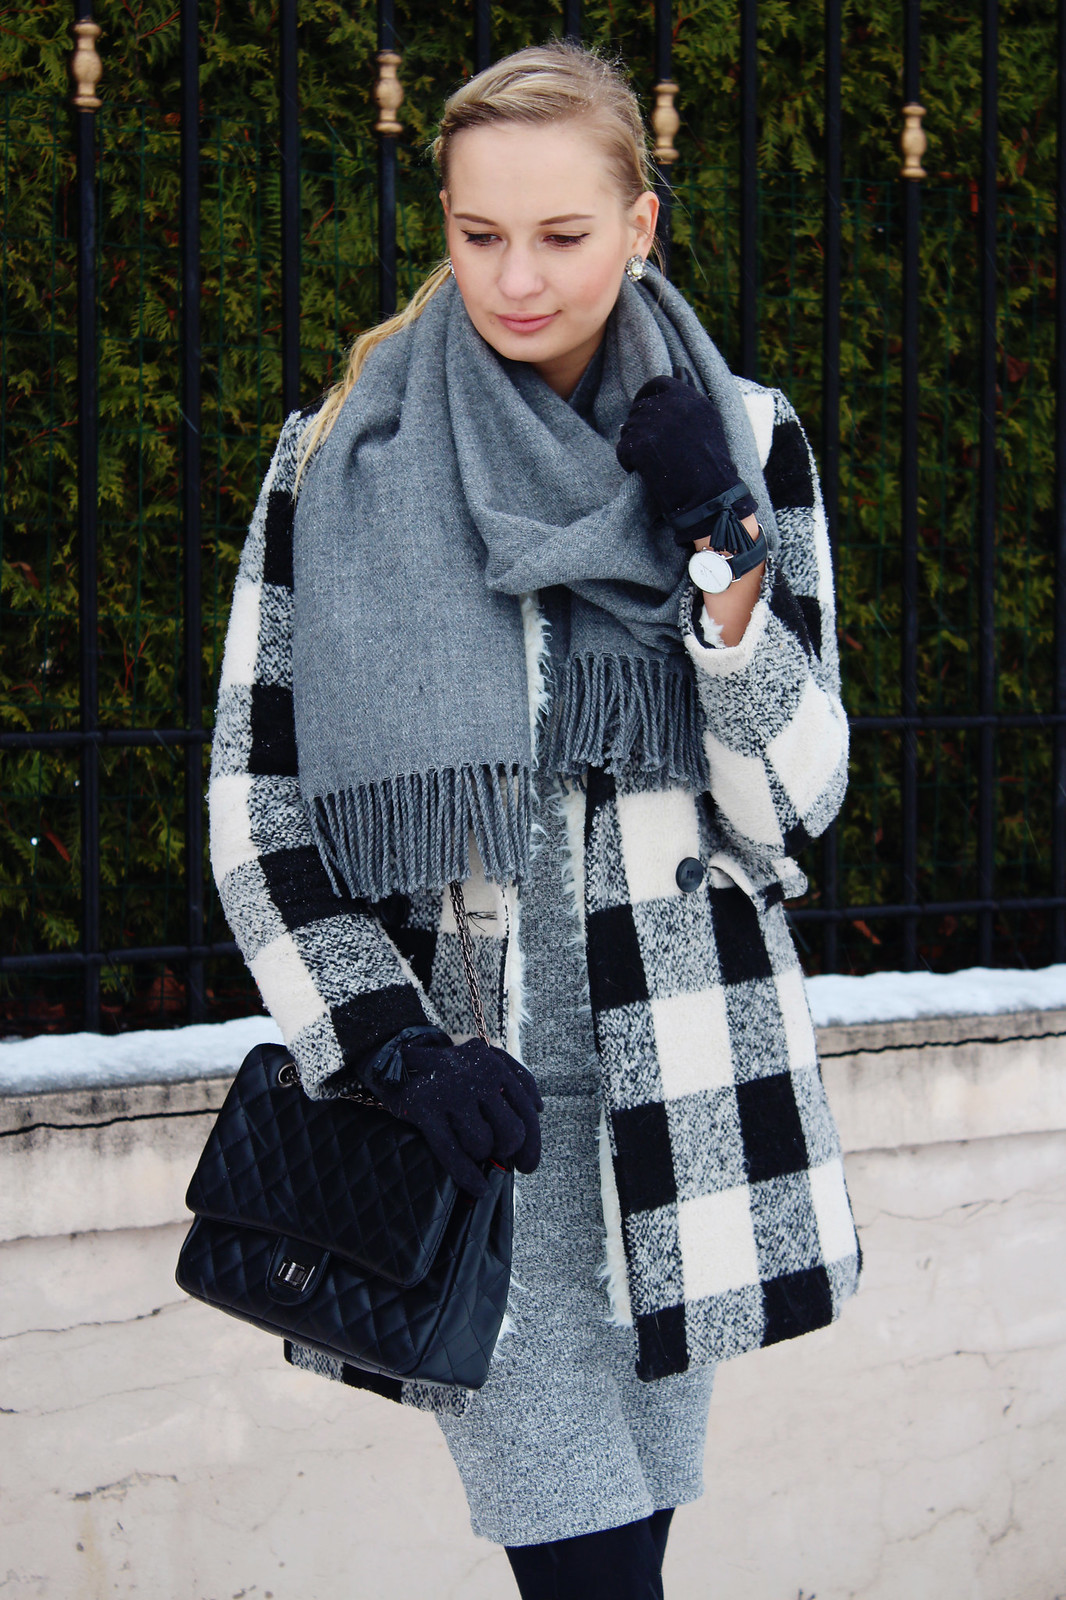 Fancy winter style